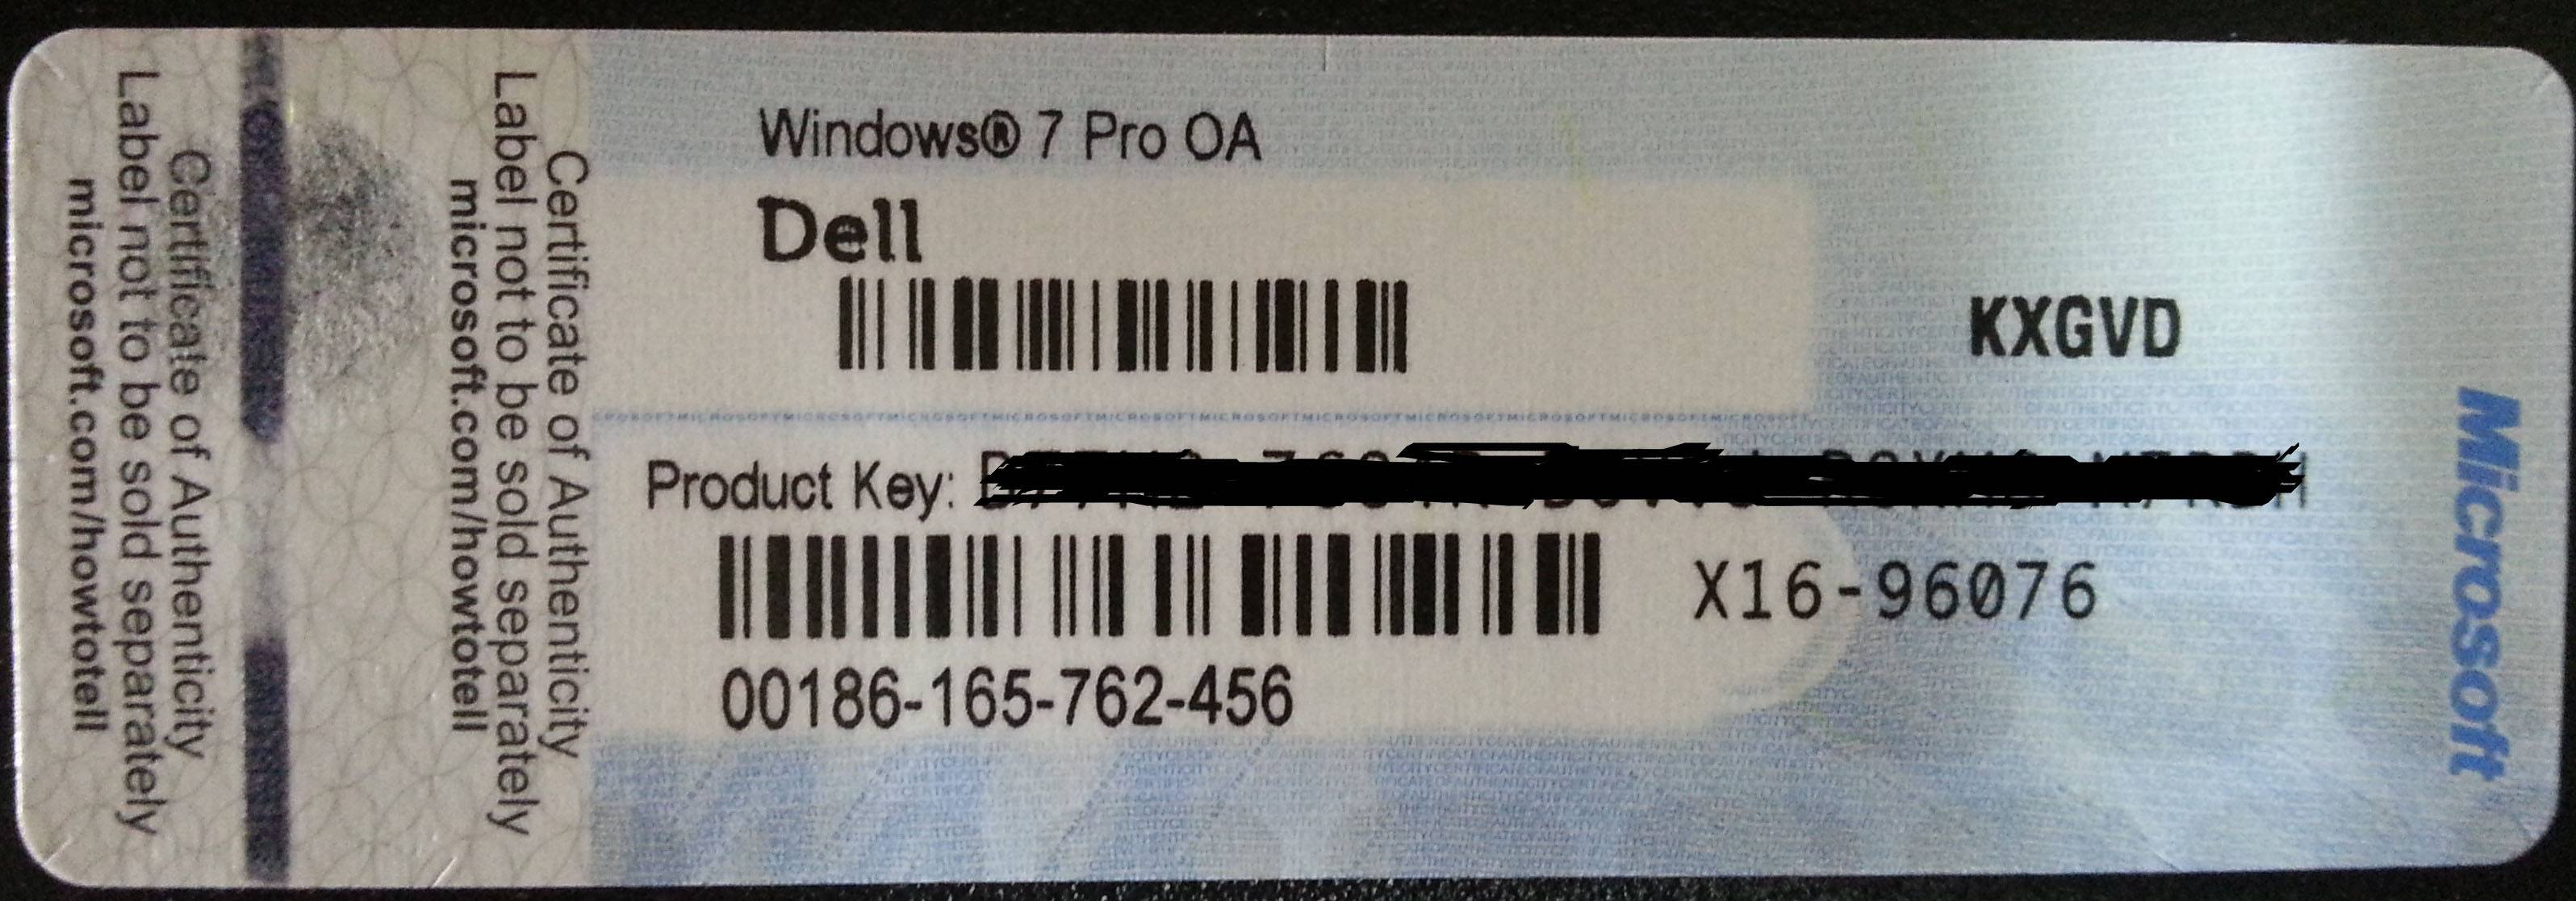 Windows Product Key Sticker Win 10 Pro OEM COA X20 Online Activate 64bit Windows 10 Professional